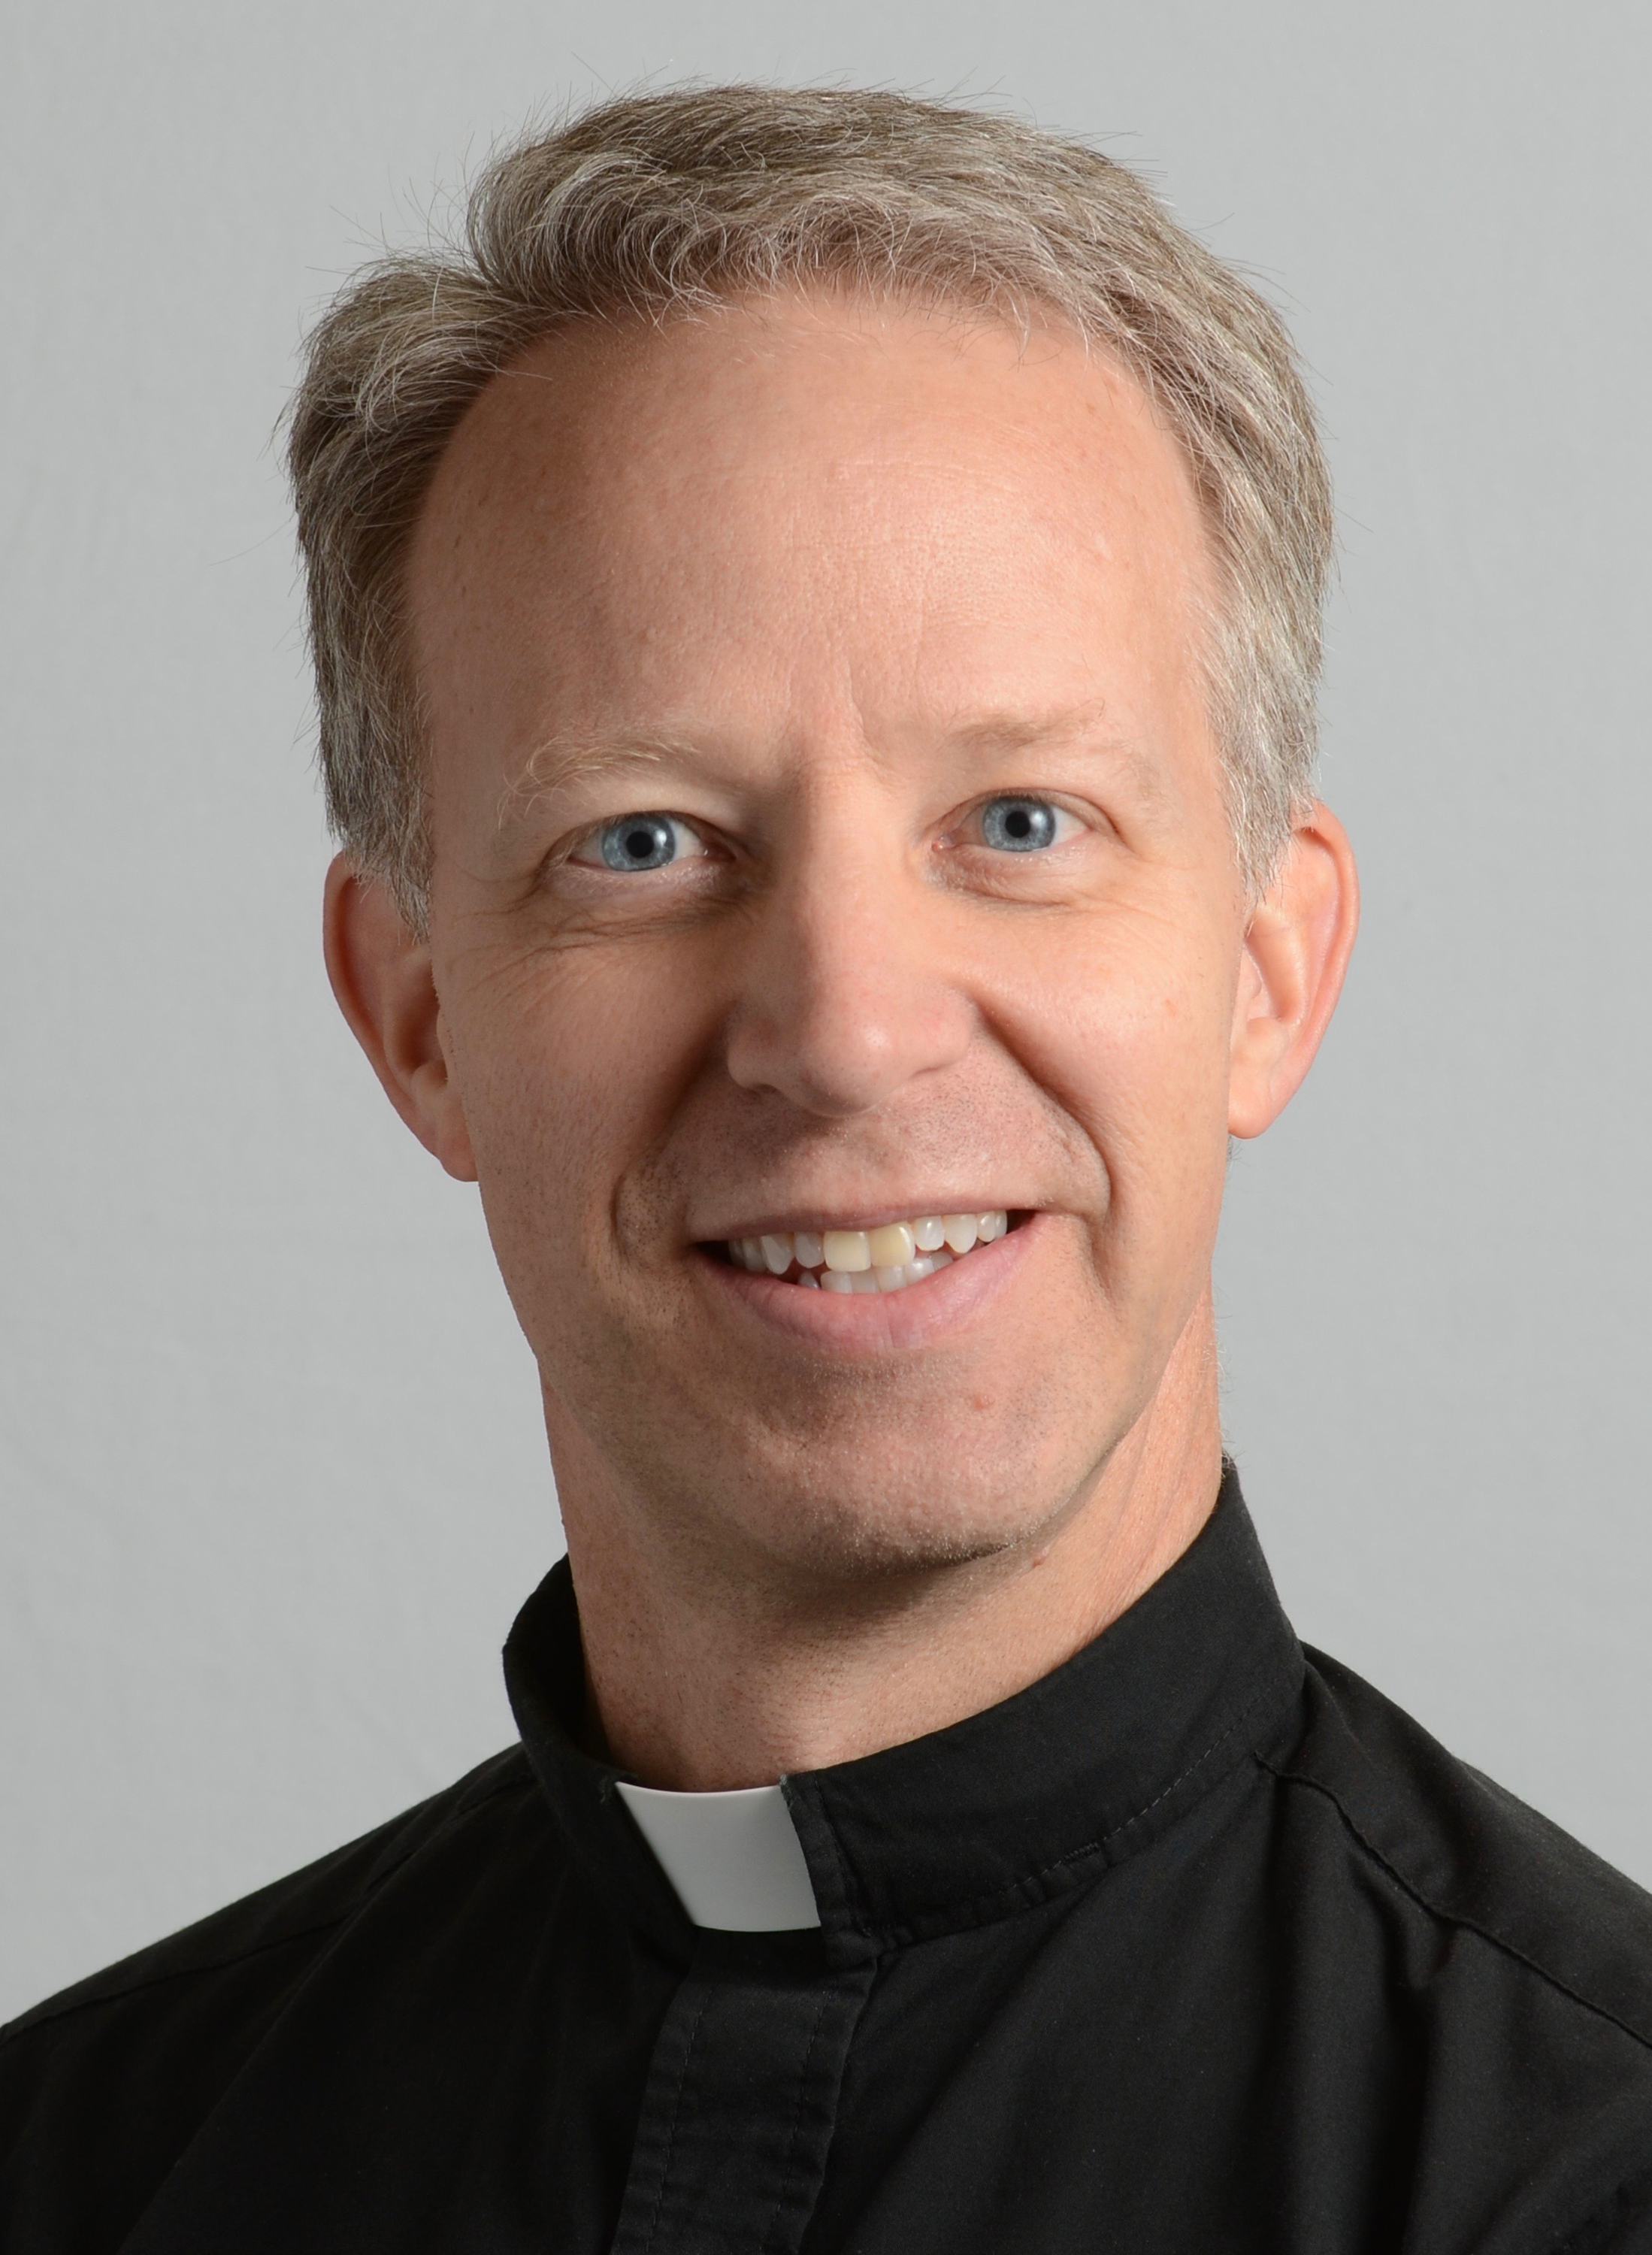 From altar boy to bishop designate father william wack todays pope francis has named holy cross priest father william a wack pastor of st ignatius martyr parish in austin texas to be the bishop of kristyandbryce Image collections